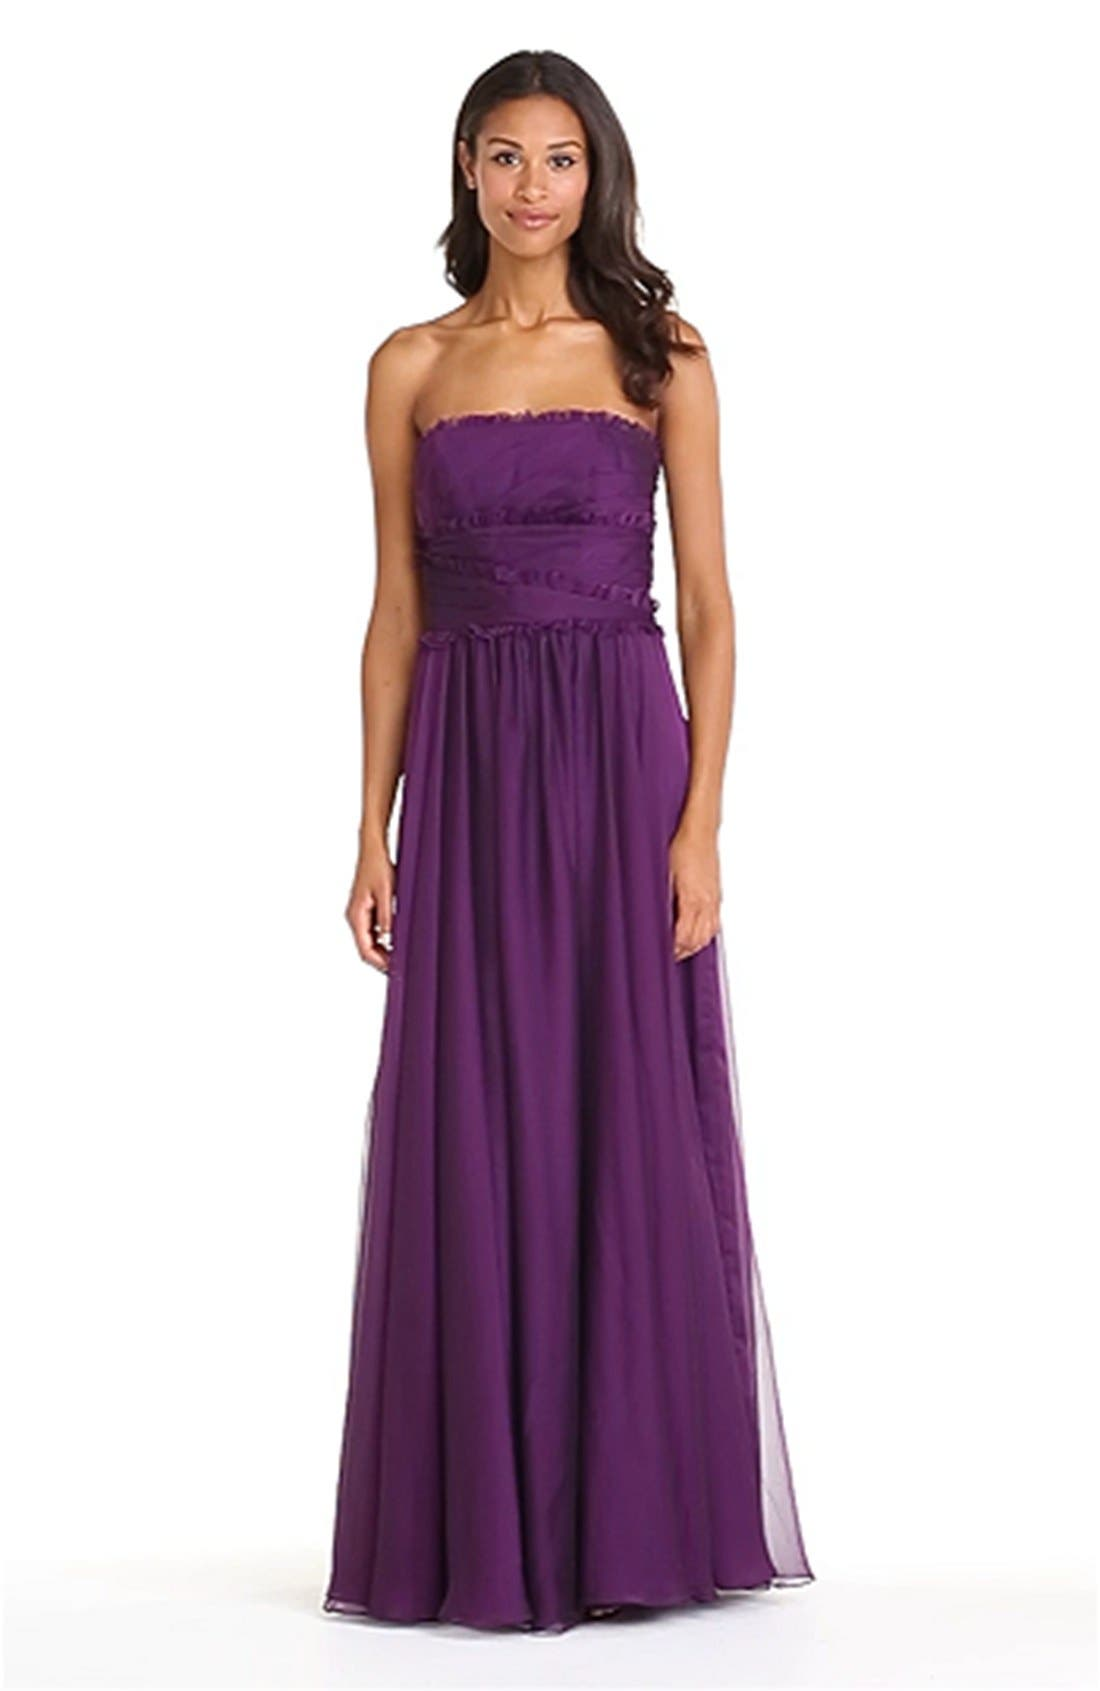 ML Monique Lhuillier Bridesmaids Strapless Chiffon Gown,                             Alternate thumbnail 41, color,